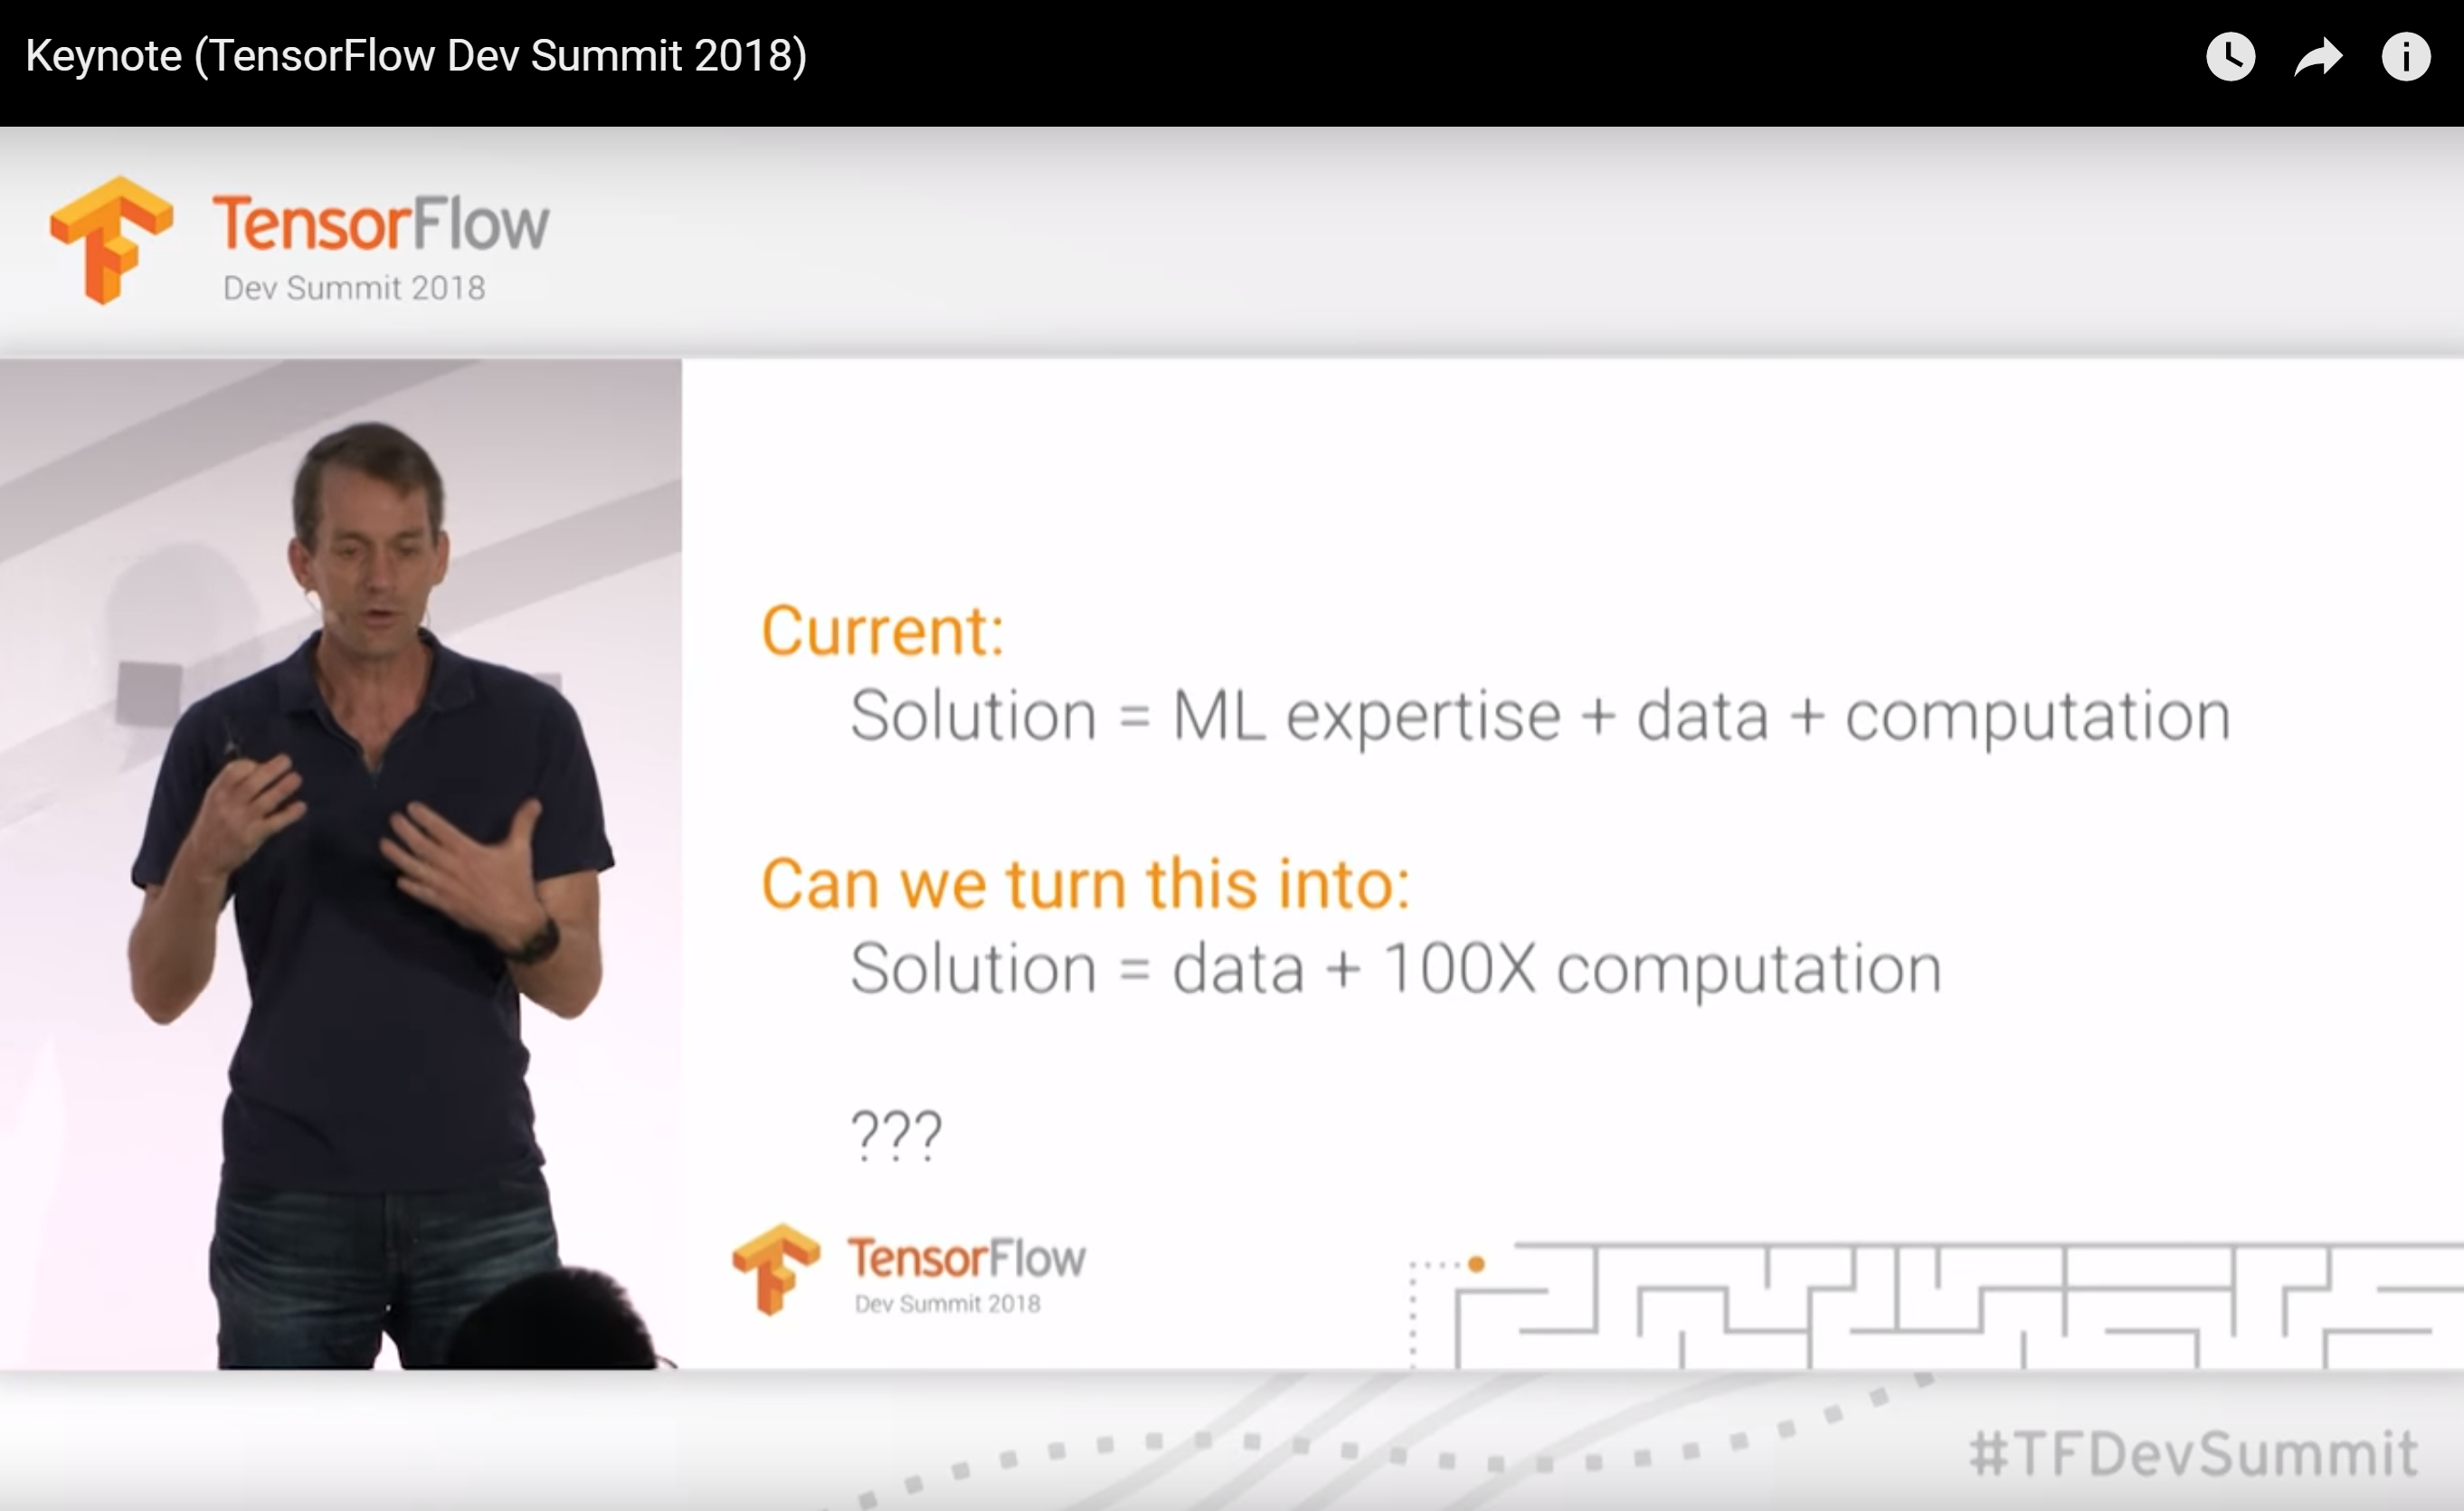 Slide from Jeff Dean's Keynote at the TensorFlow Dev Summit